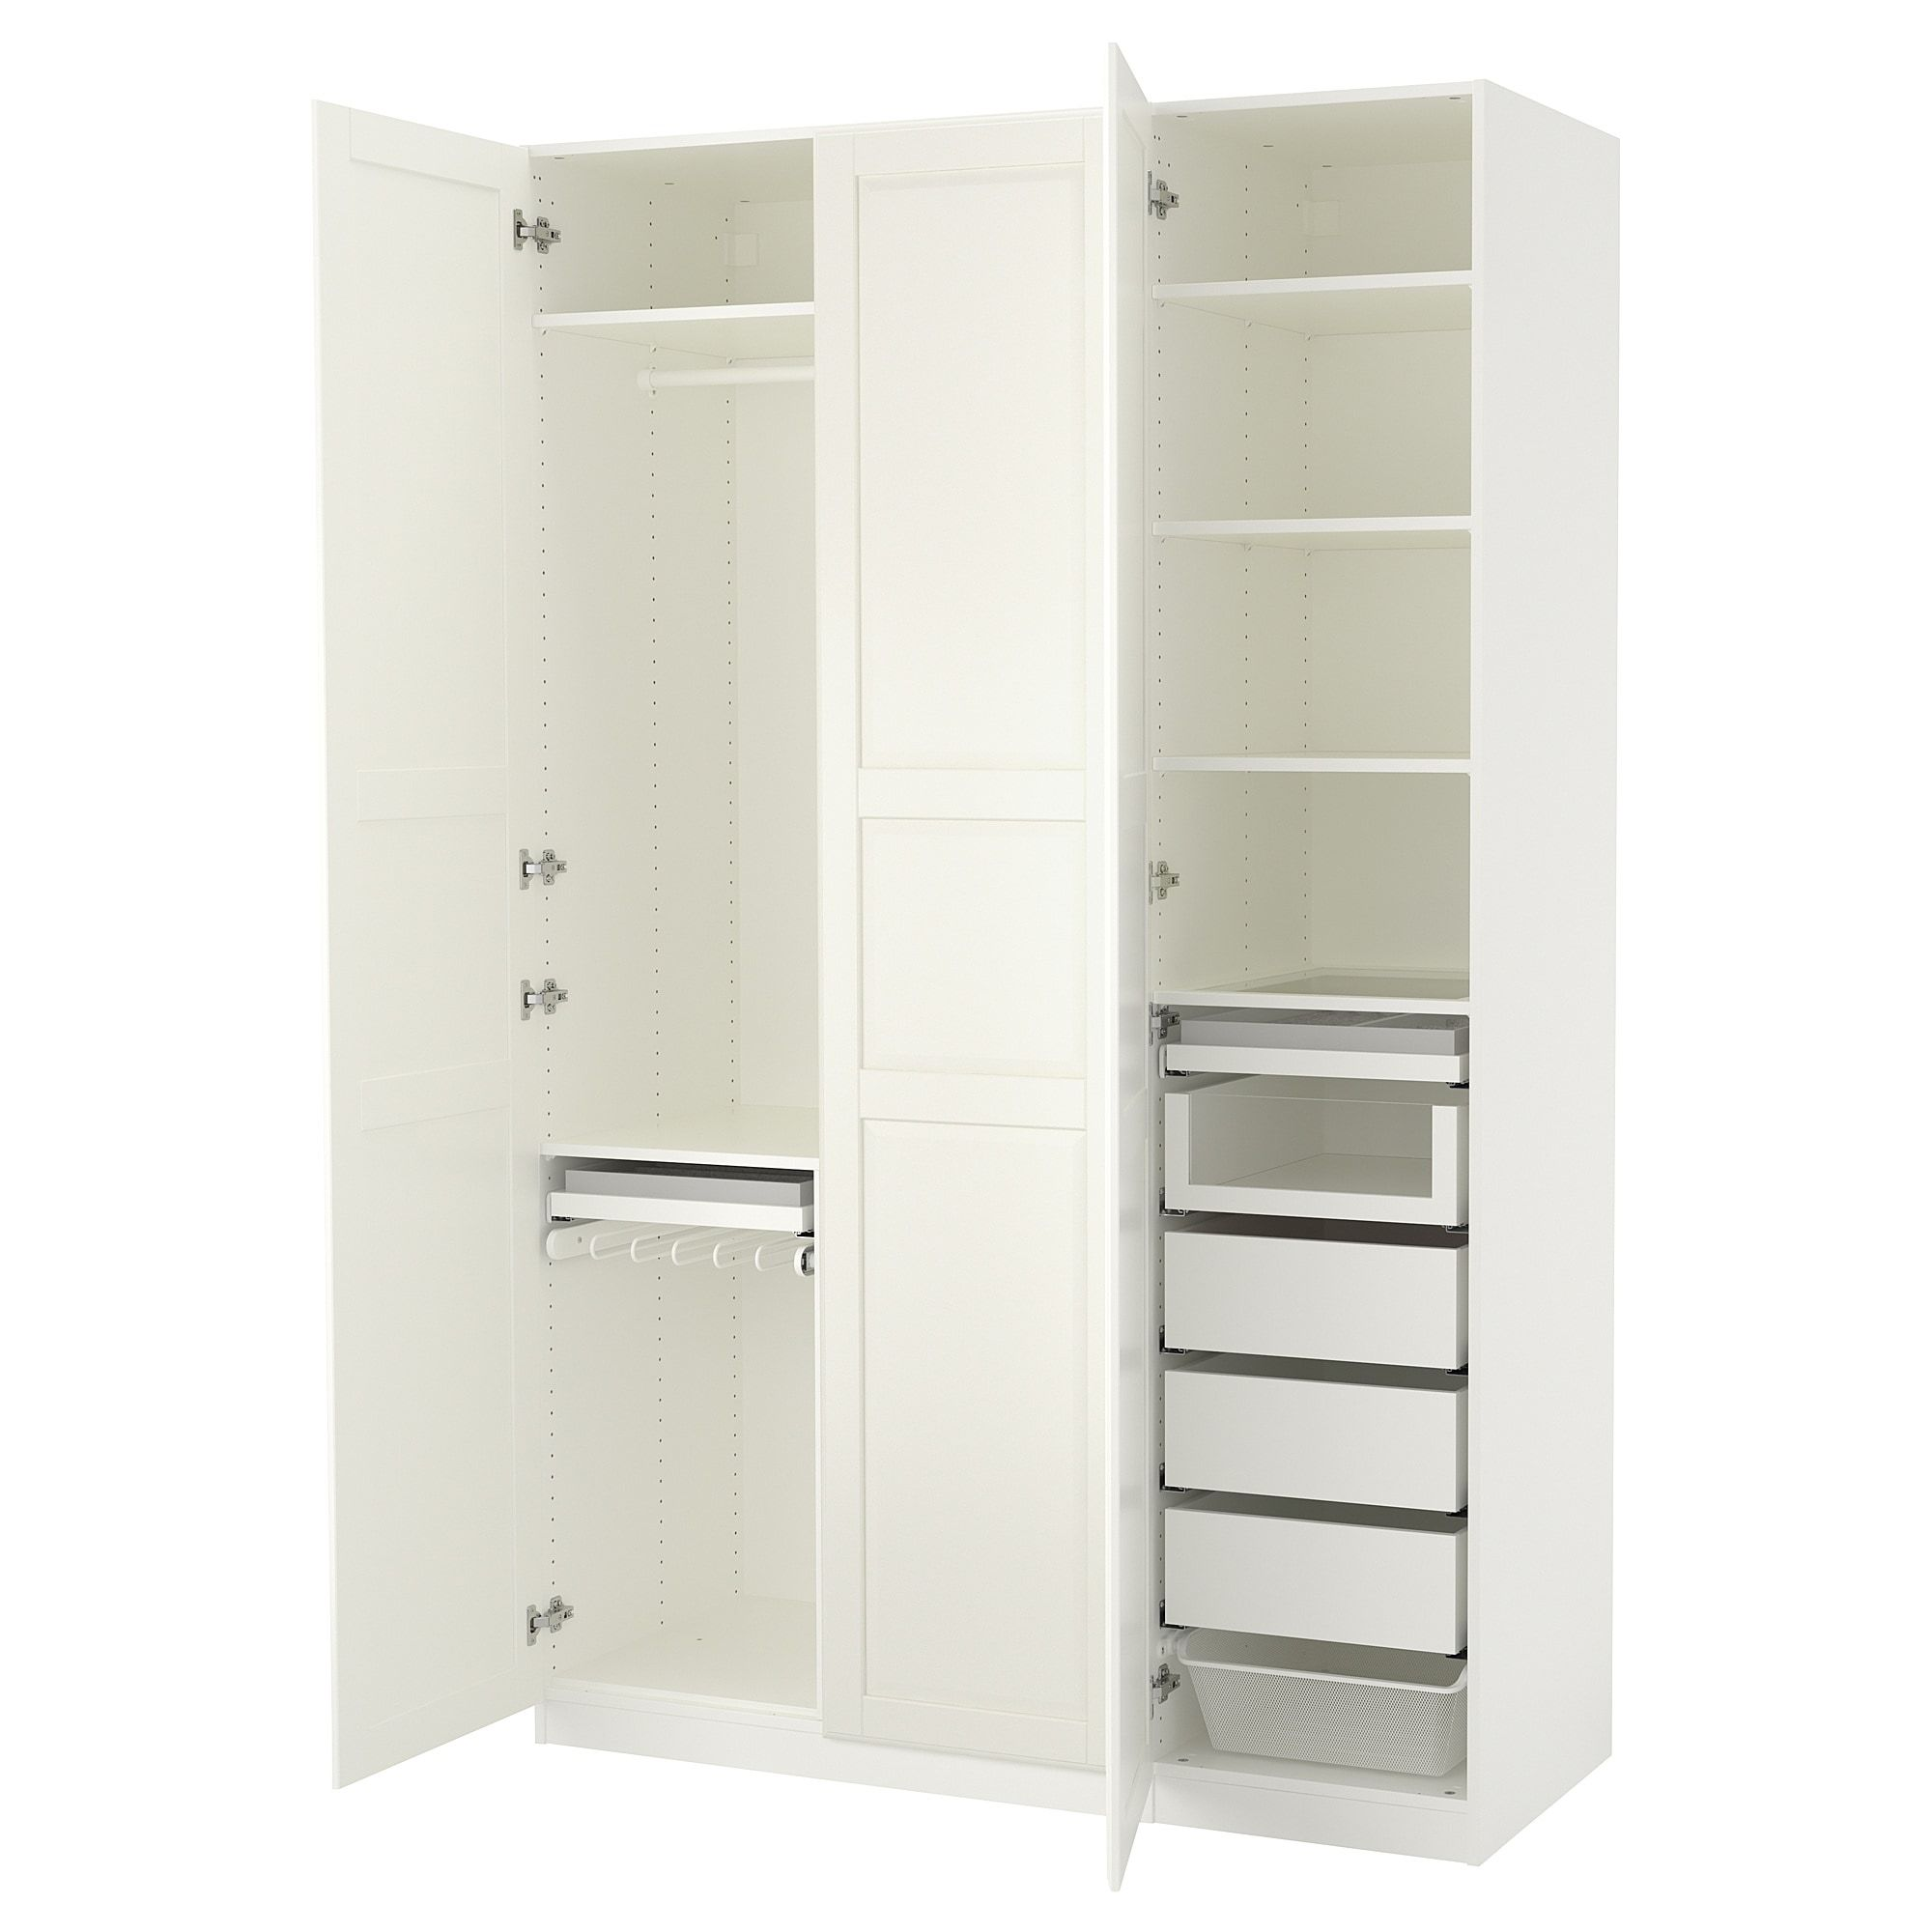 Schlafzimmerschrank Ikea Weiß Pax Wardrobe White Tyssedal White In 2019 Shopping Furniture